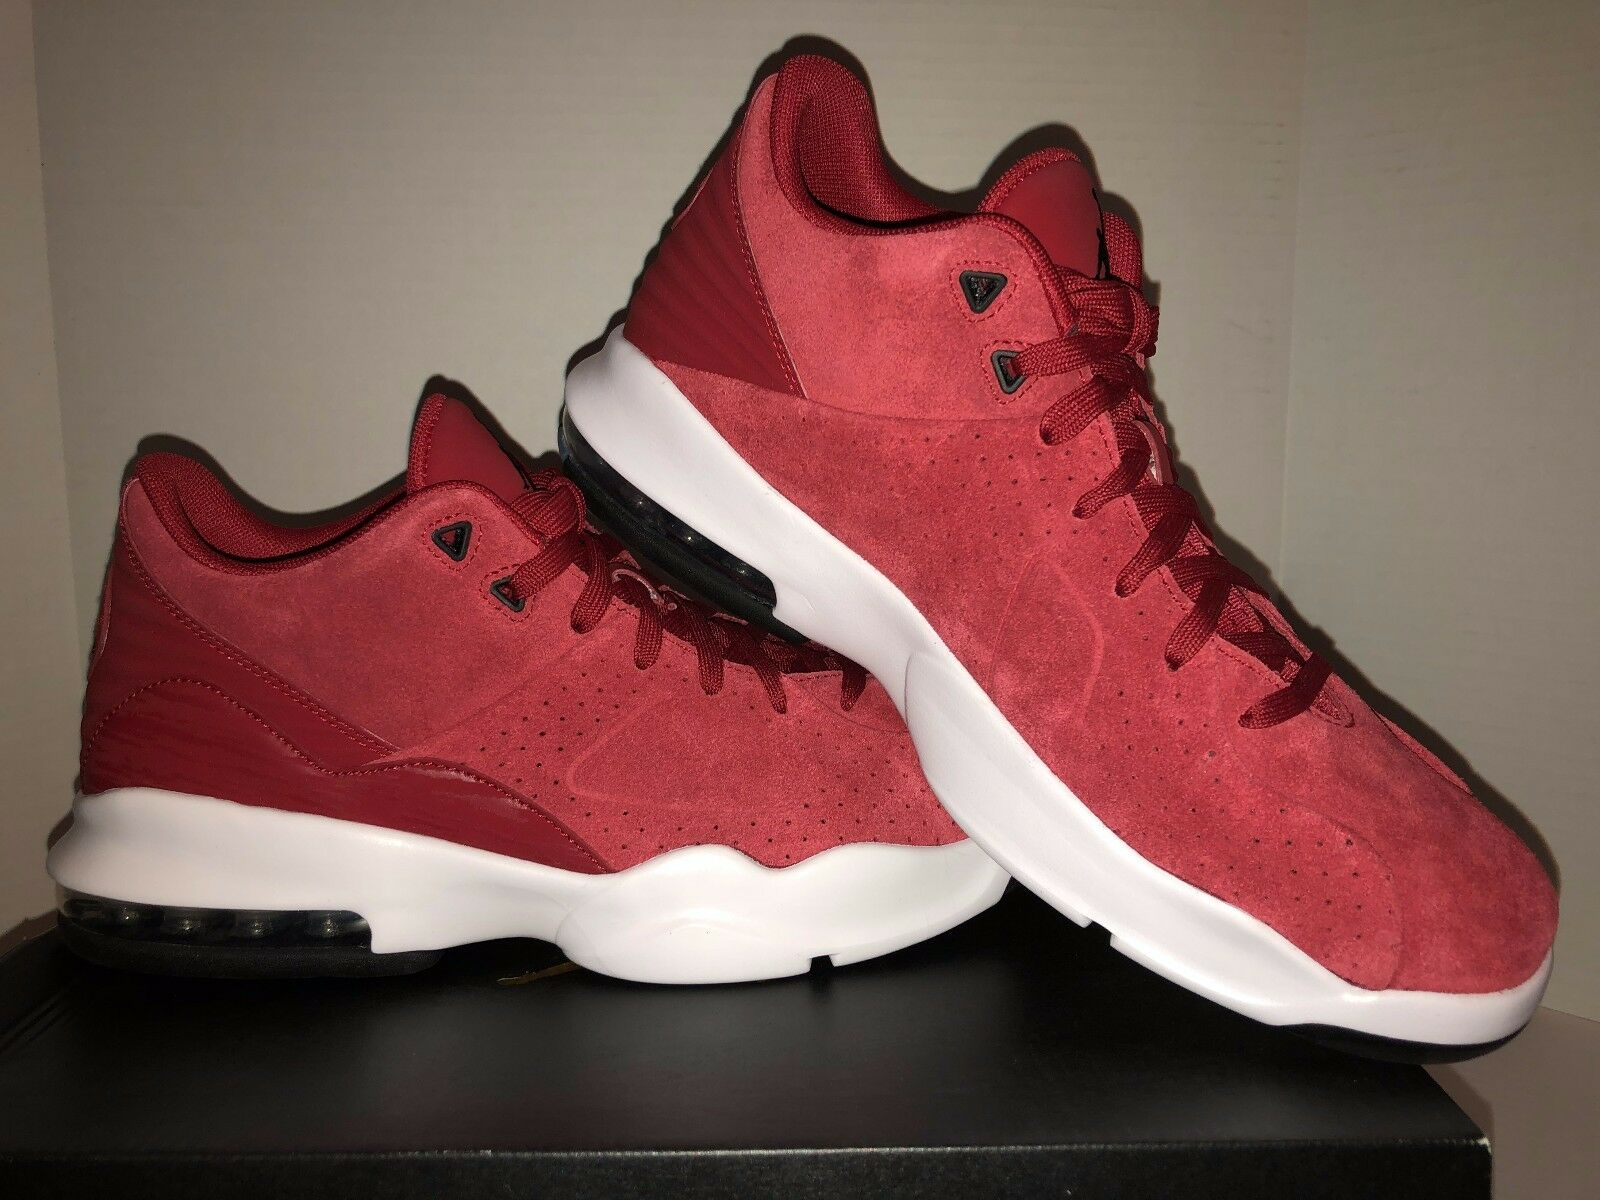 Men's New Jordan Air Franchise Red Basketball Shoes with White and Black Trim